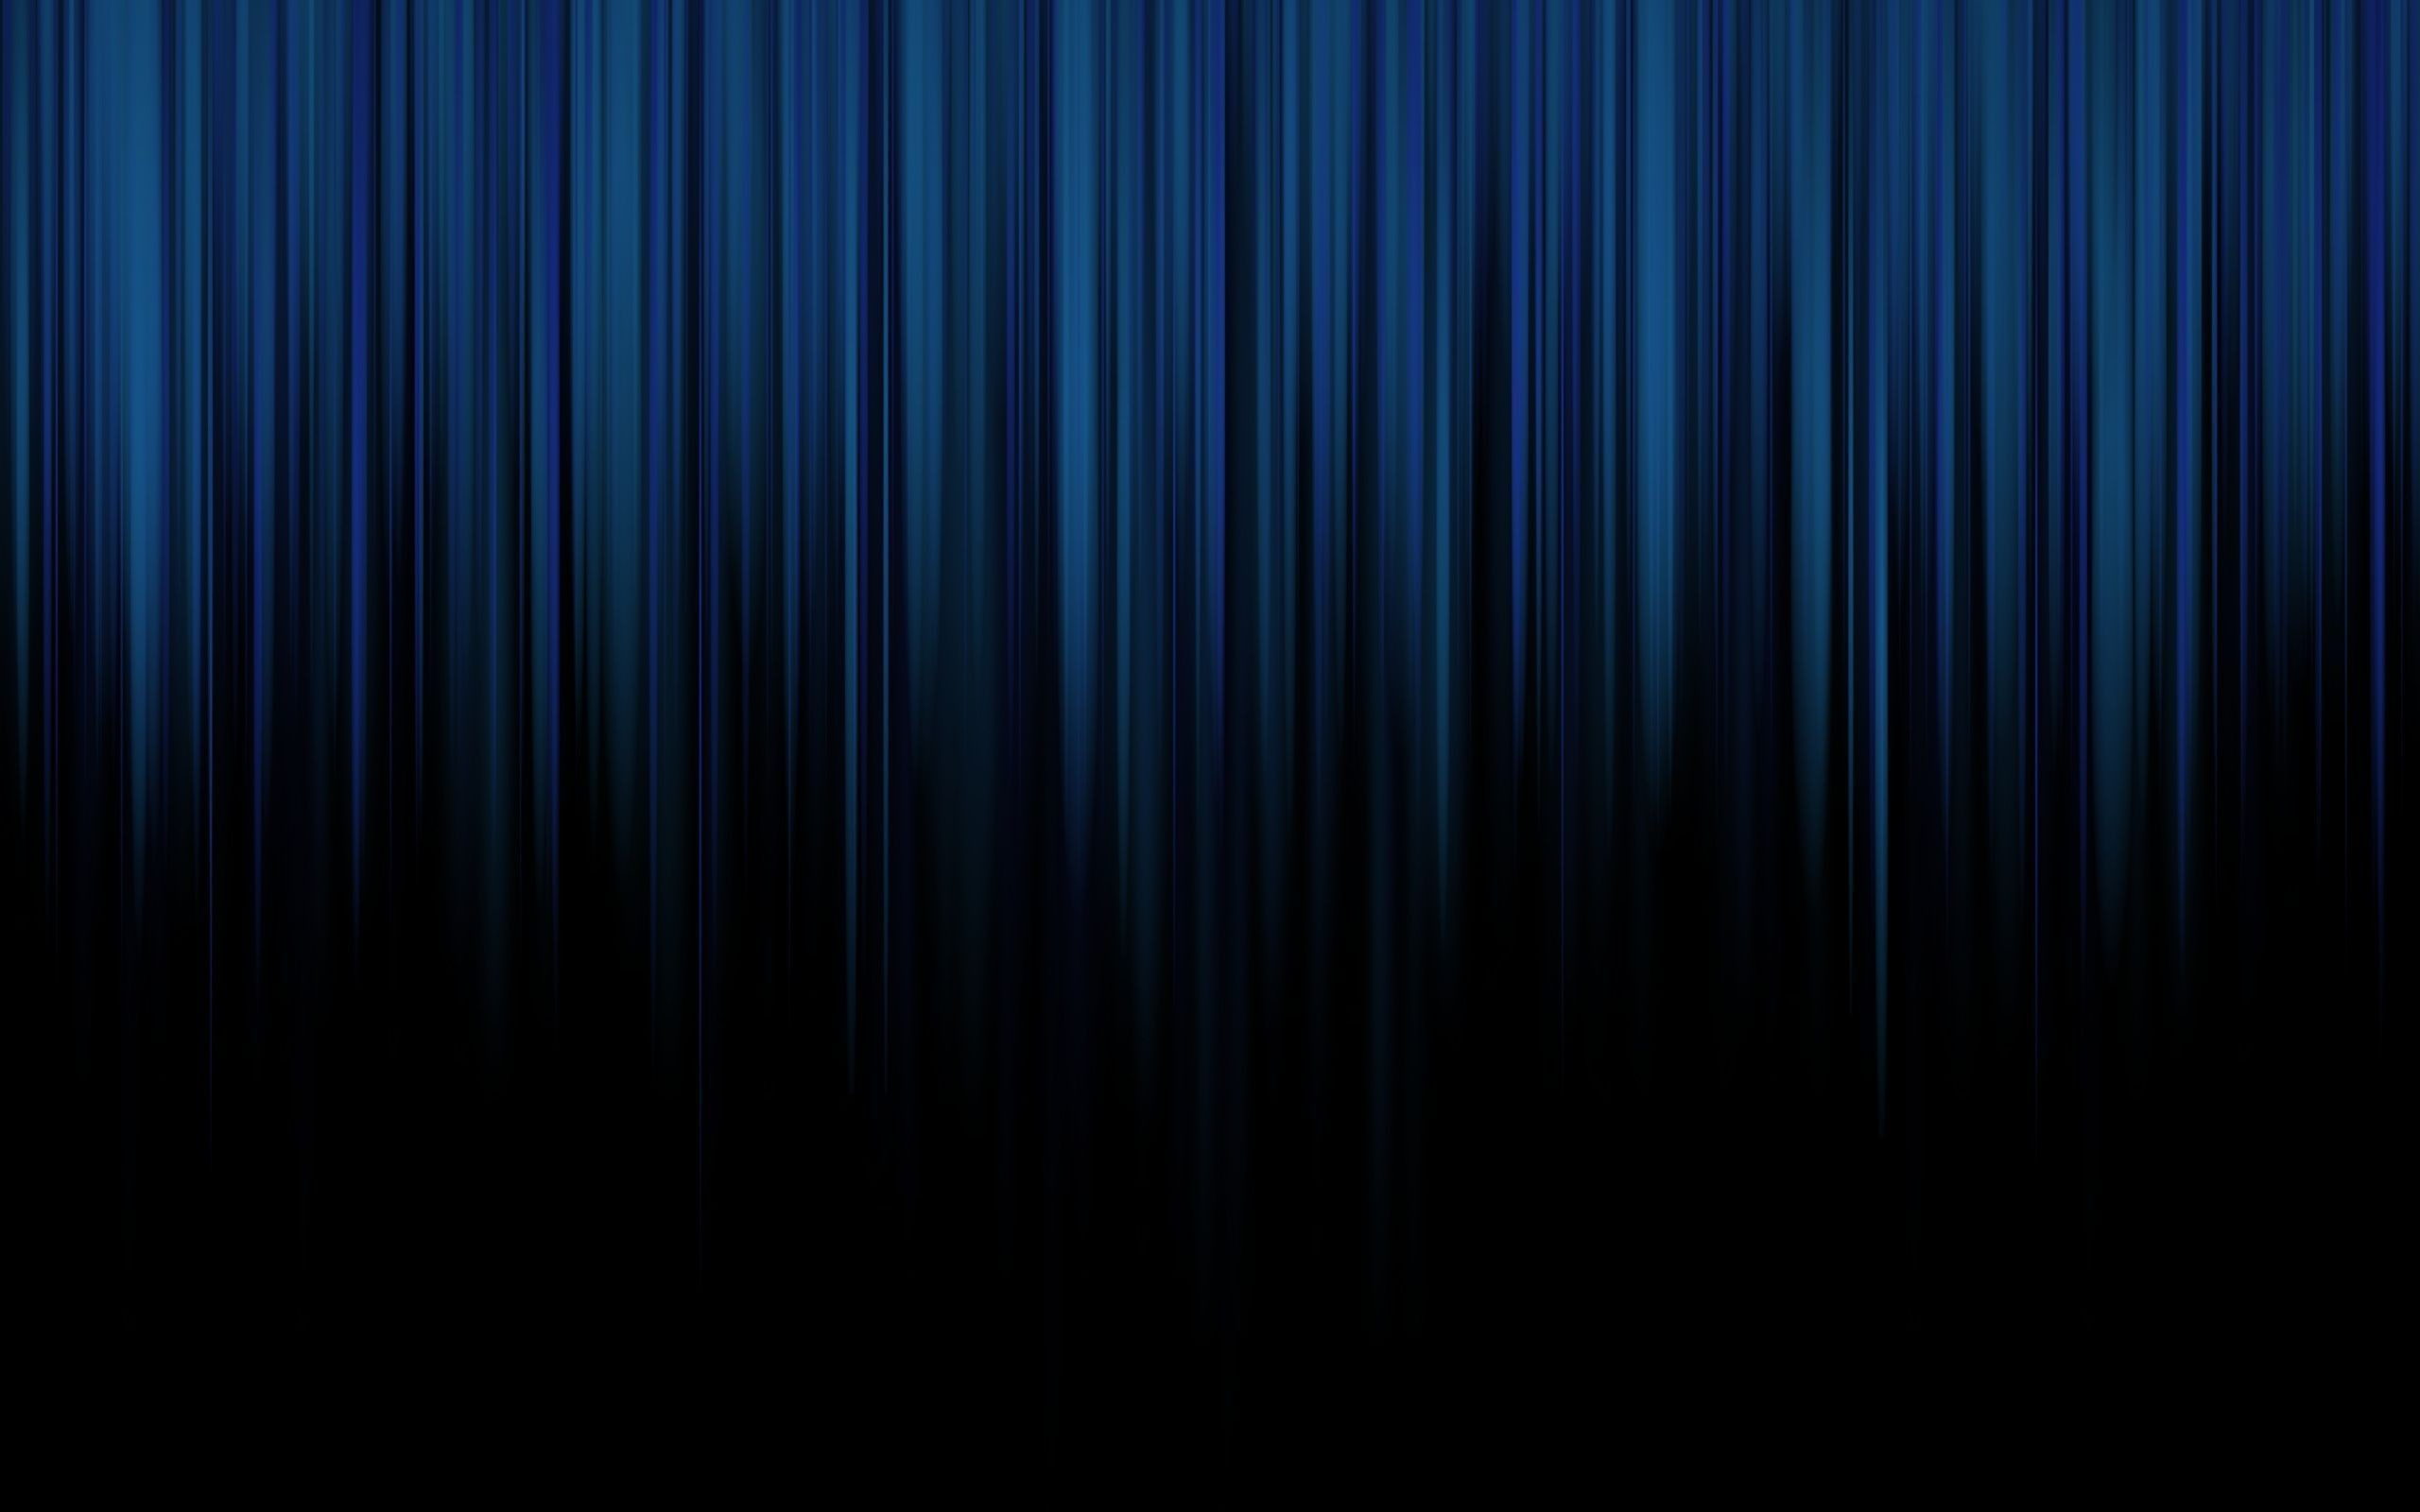 2560x1600 Blue Stripes Wallpaper - All Wallpapers New